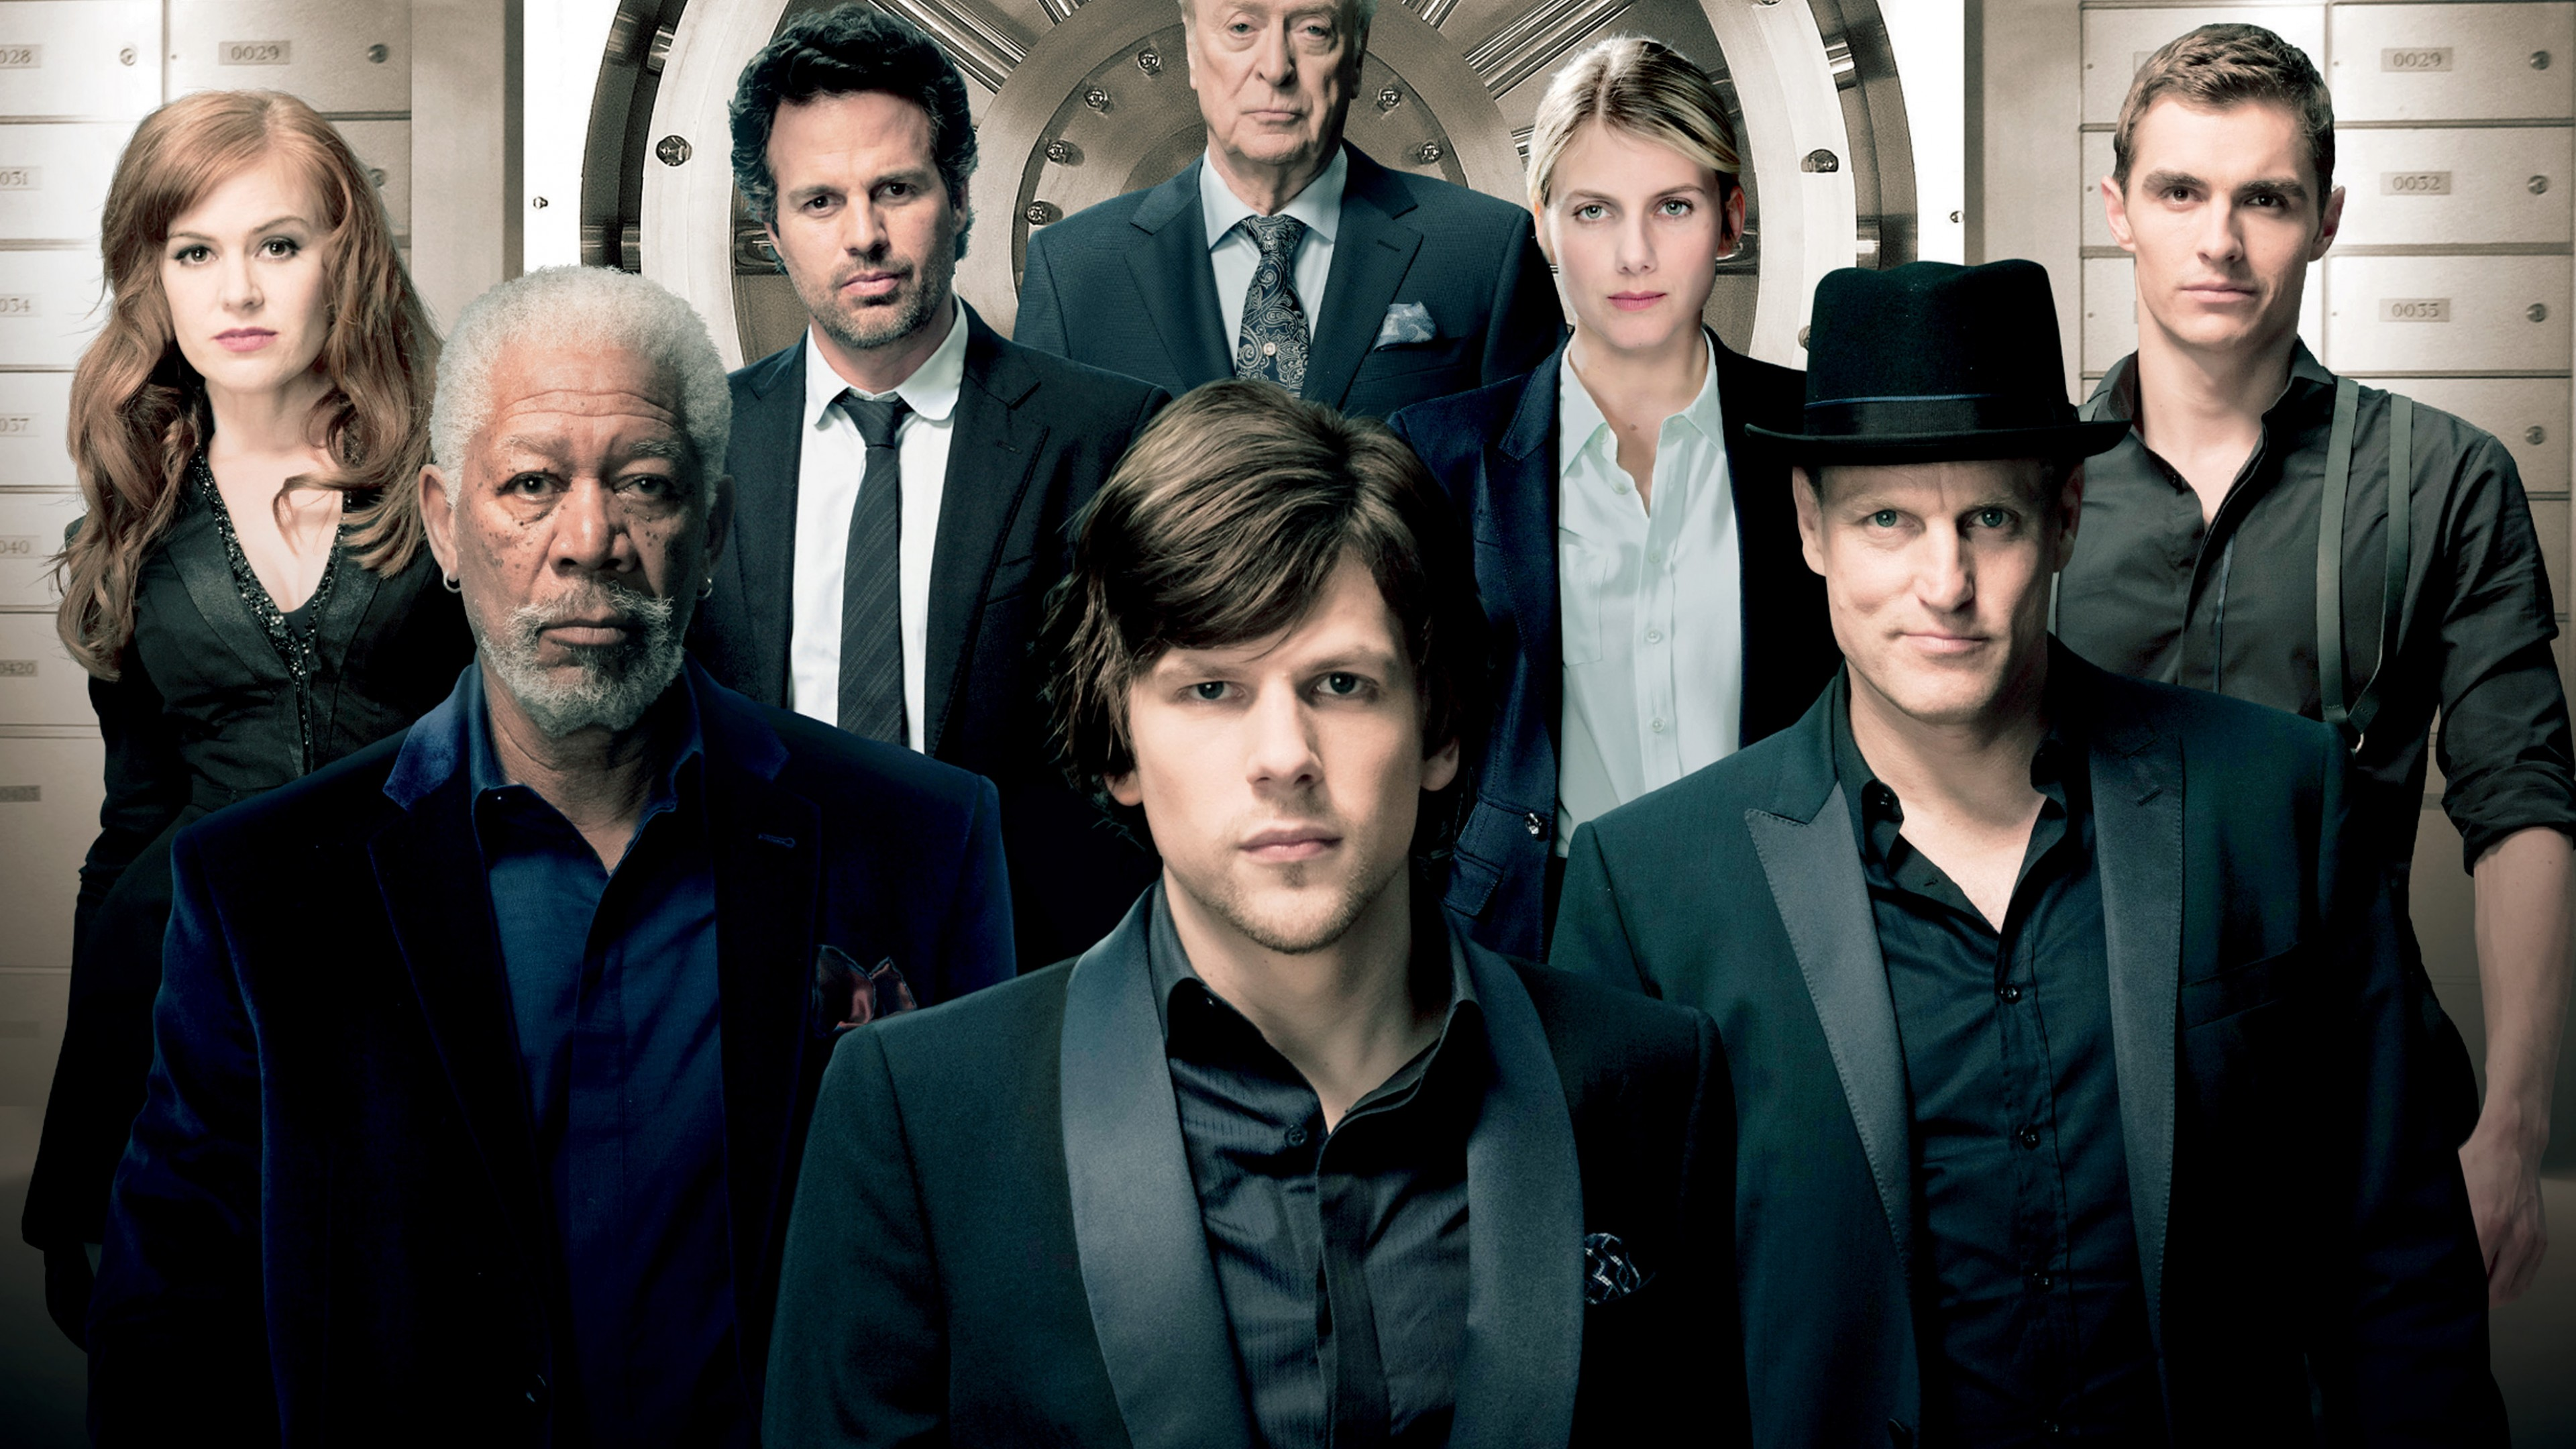 Wallpapers Now You See Me 2, Jesse Eisenberg, Woody Harrelson, Dave